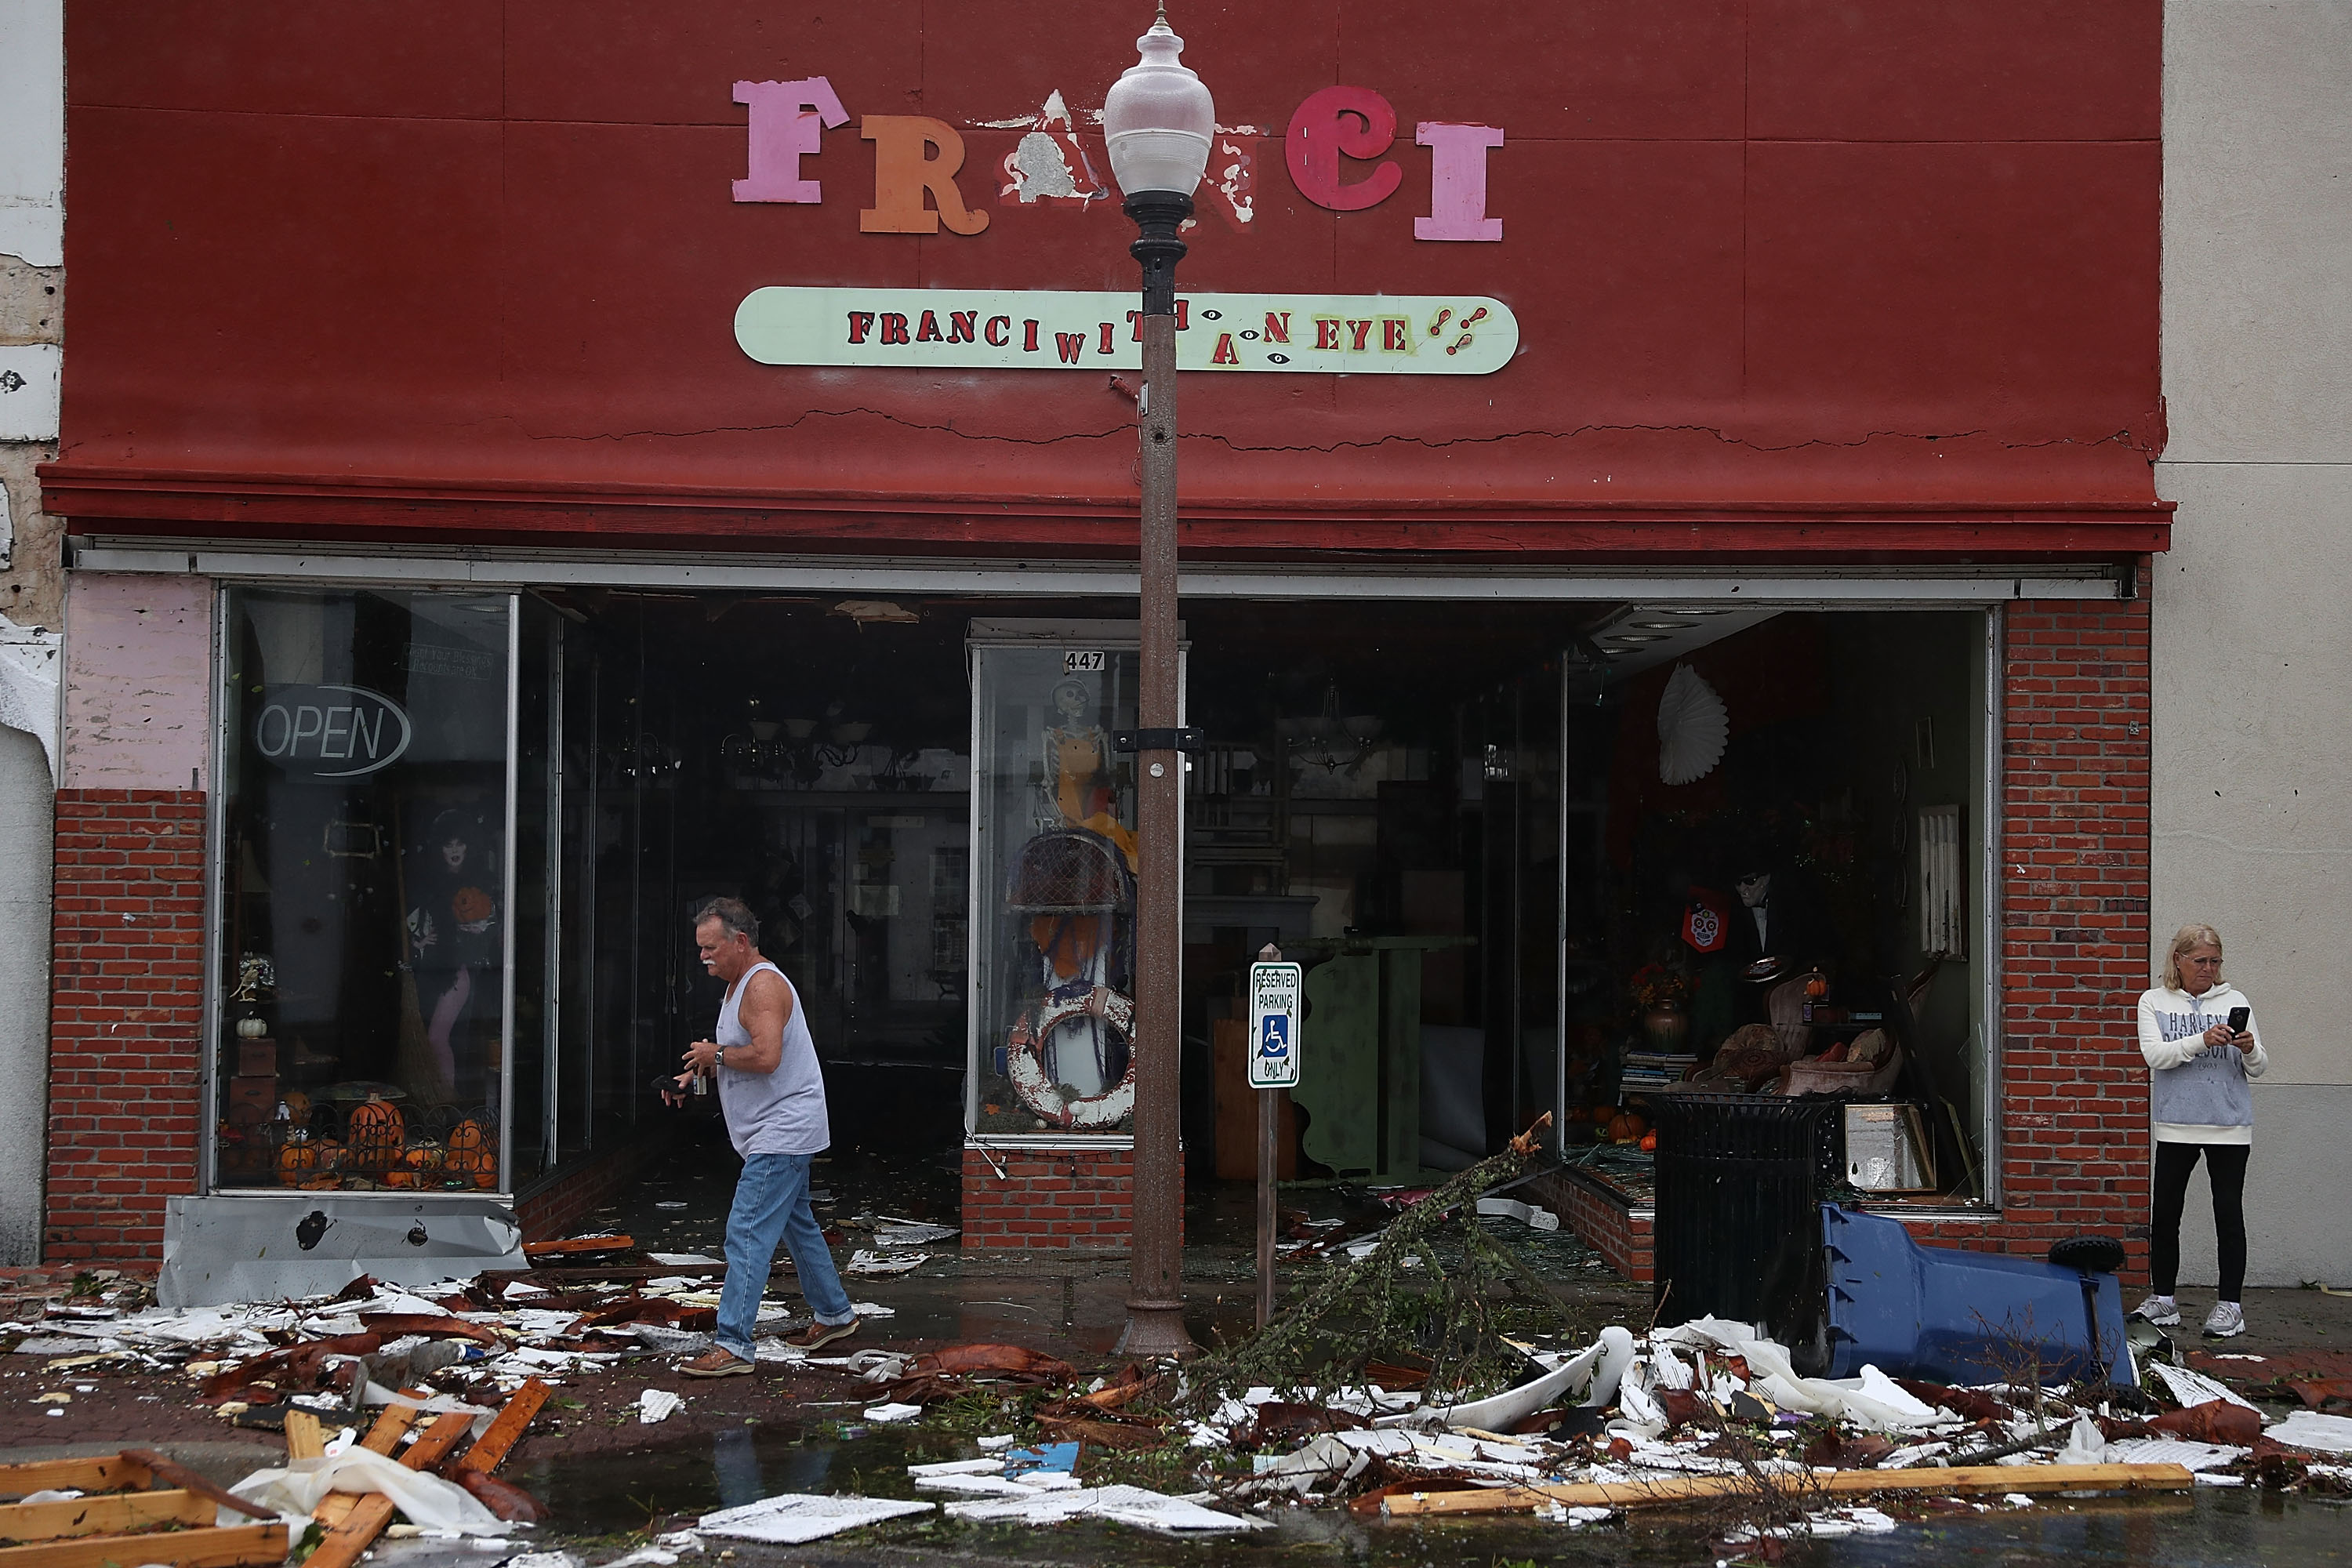 People walk past damaged stores after hurricane Michael passed through the downtown area on October 10, 2018 in Panama City, Florida. The hurricane hit the Florida Panhandle as a category 4 storm.